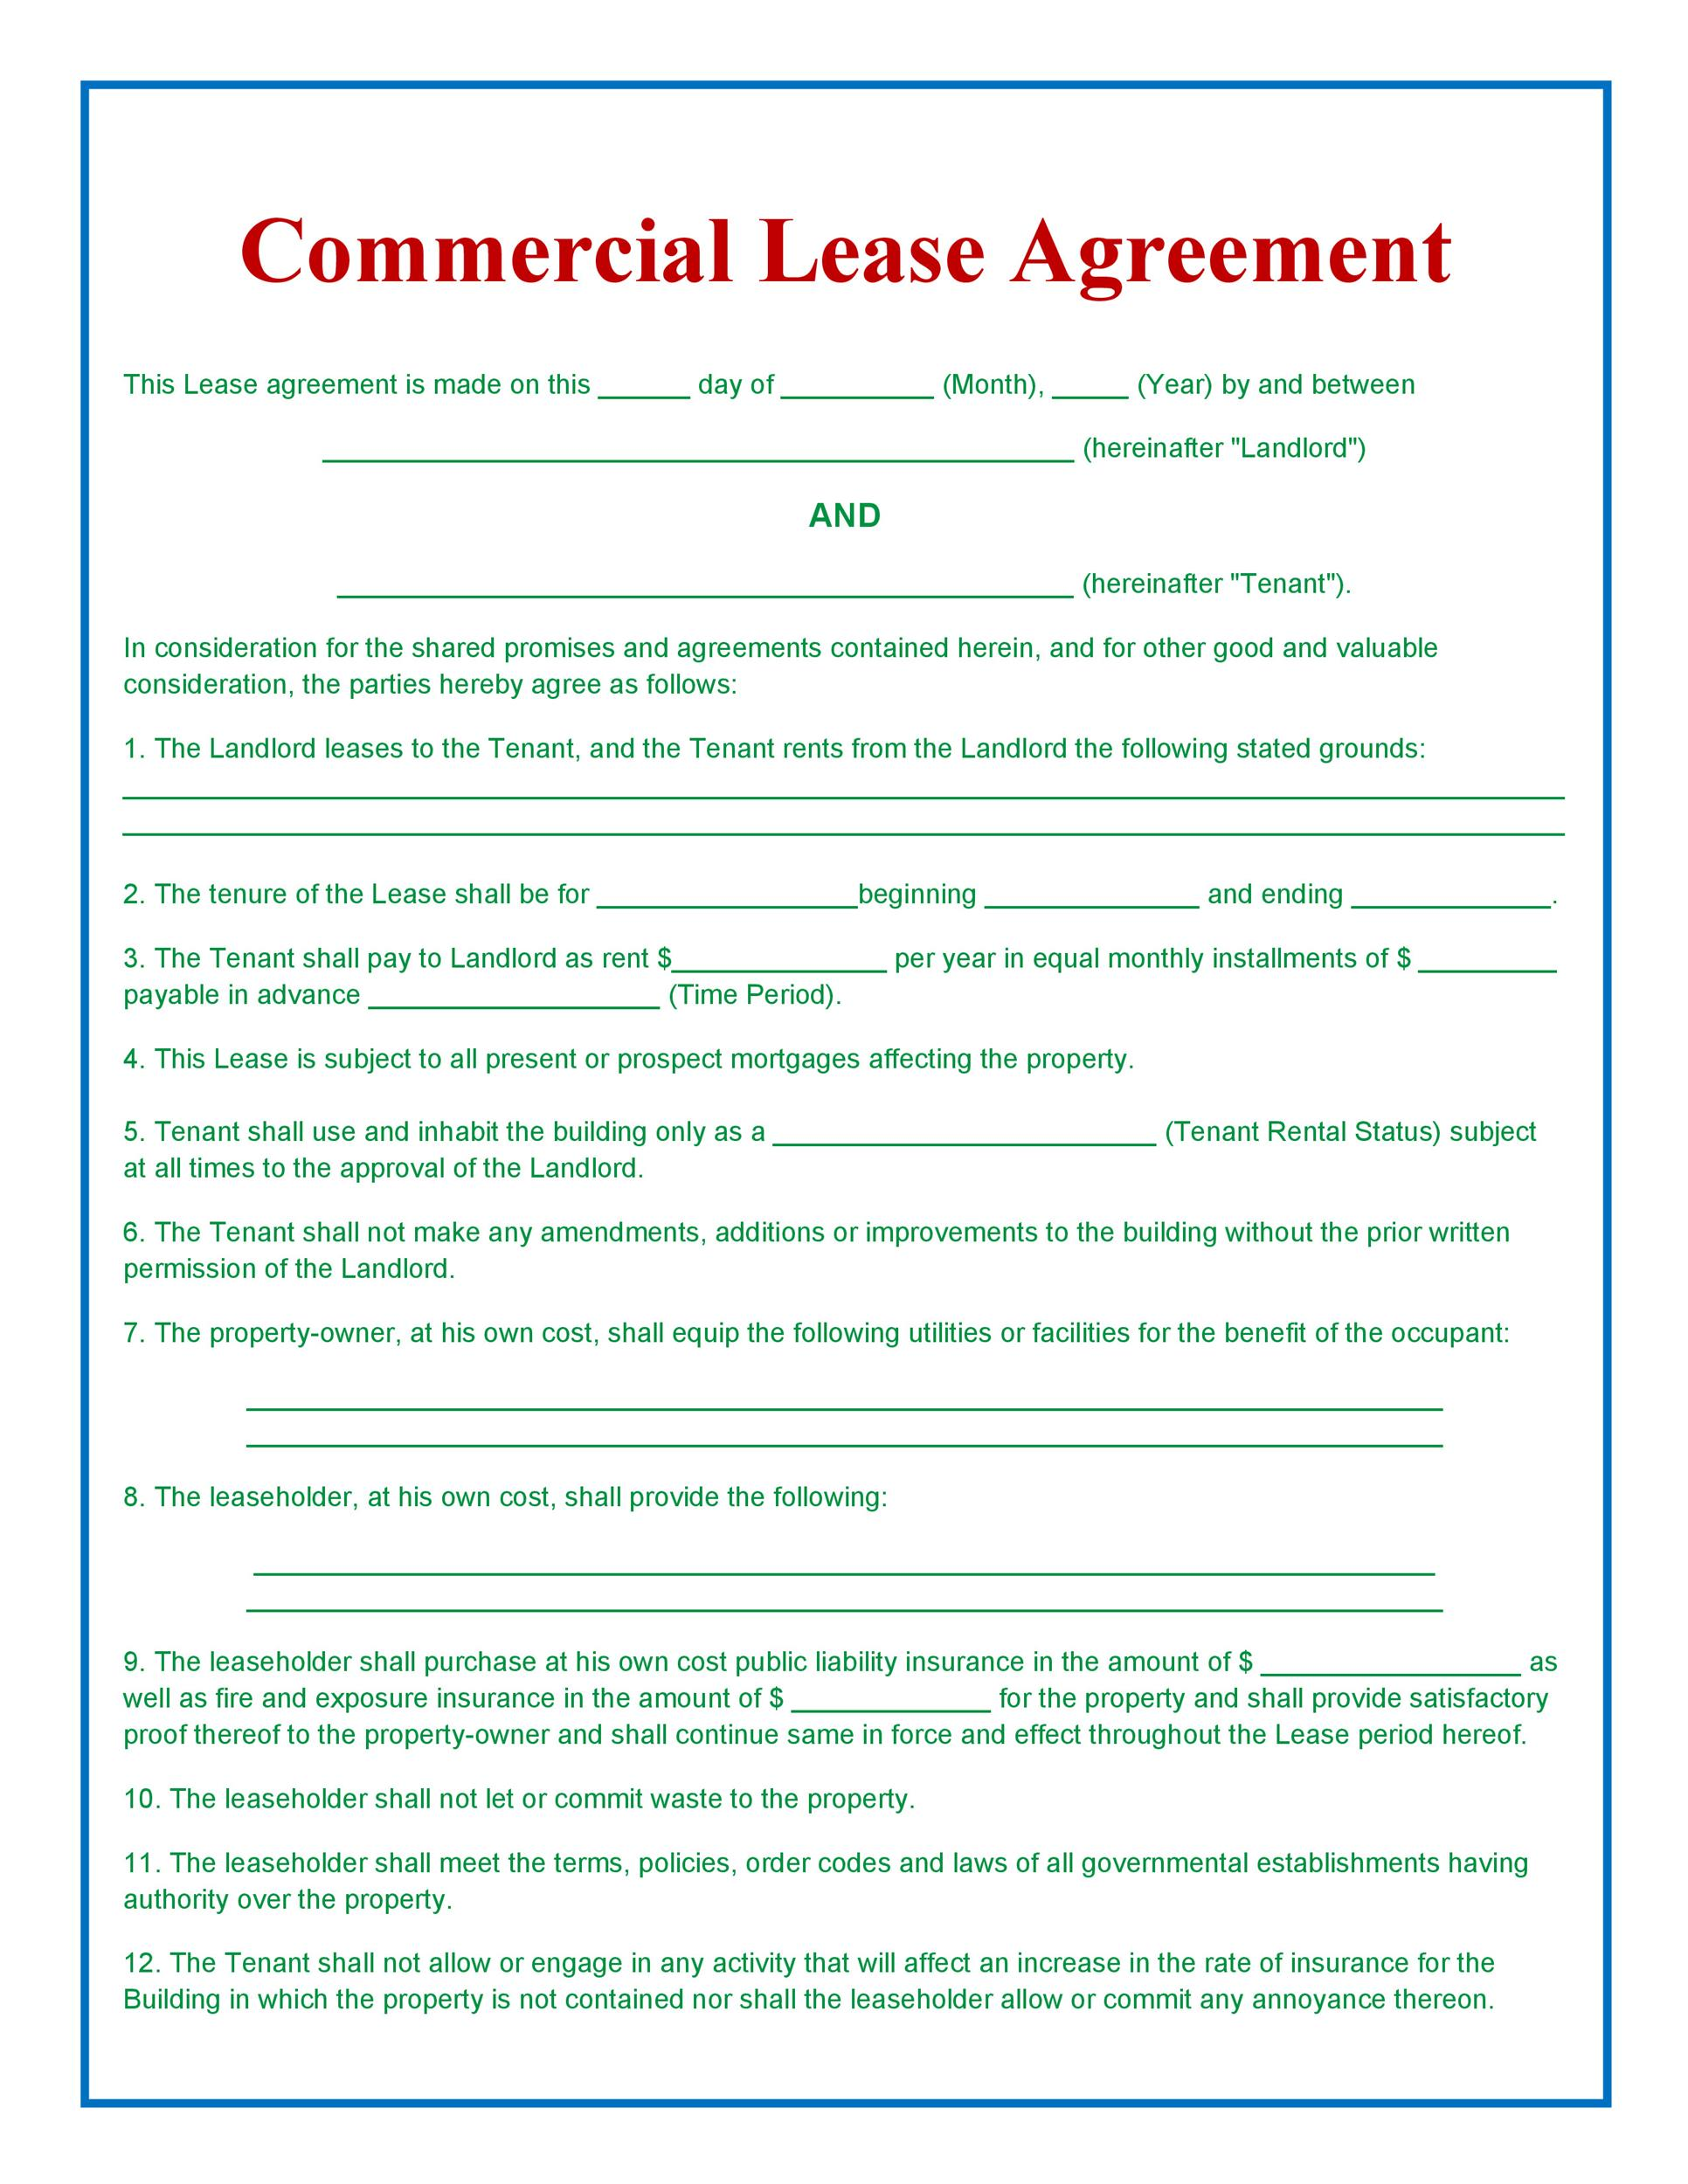 26 free commercial lease agreement templates template lab. Black Bedroom Furniture Sets. Home Design Ideas